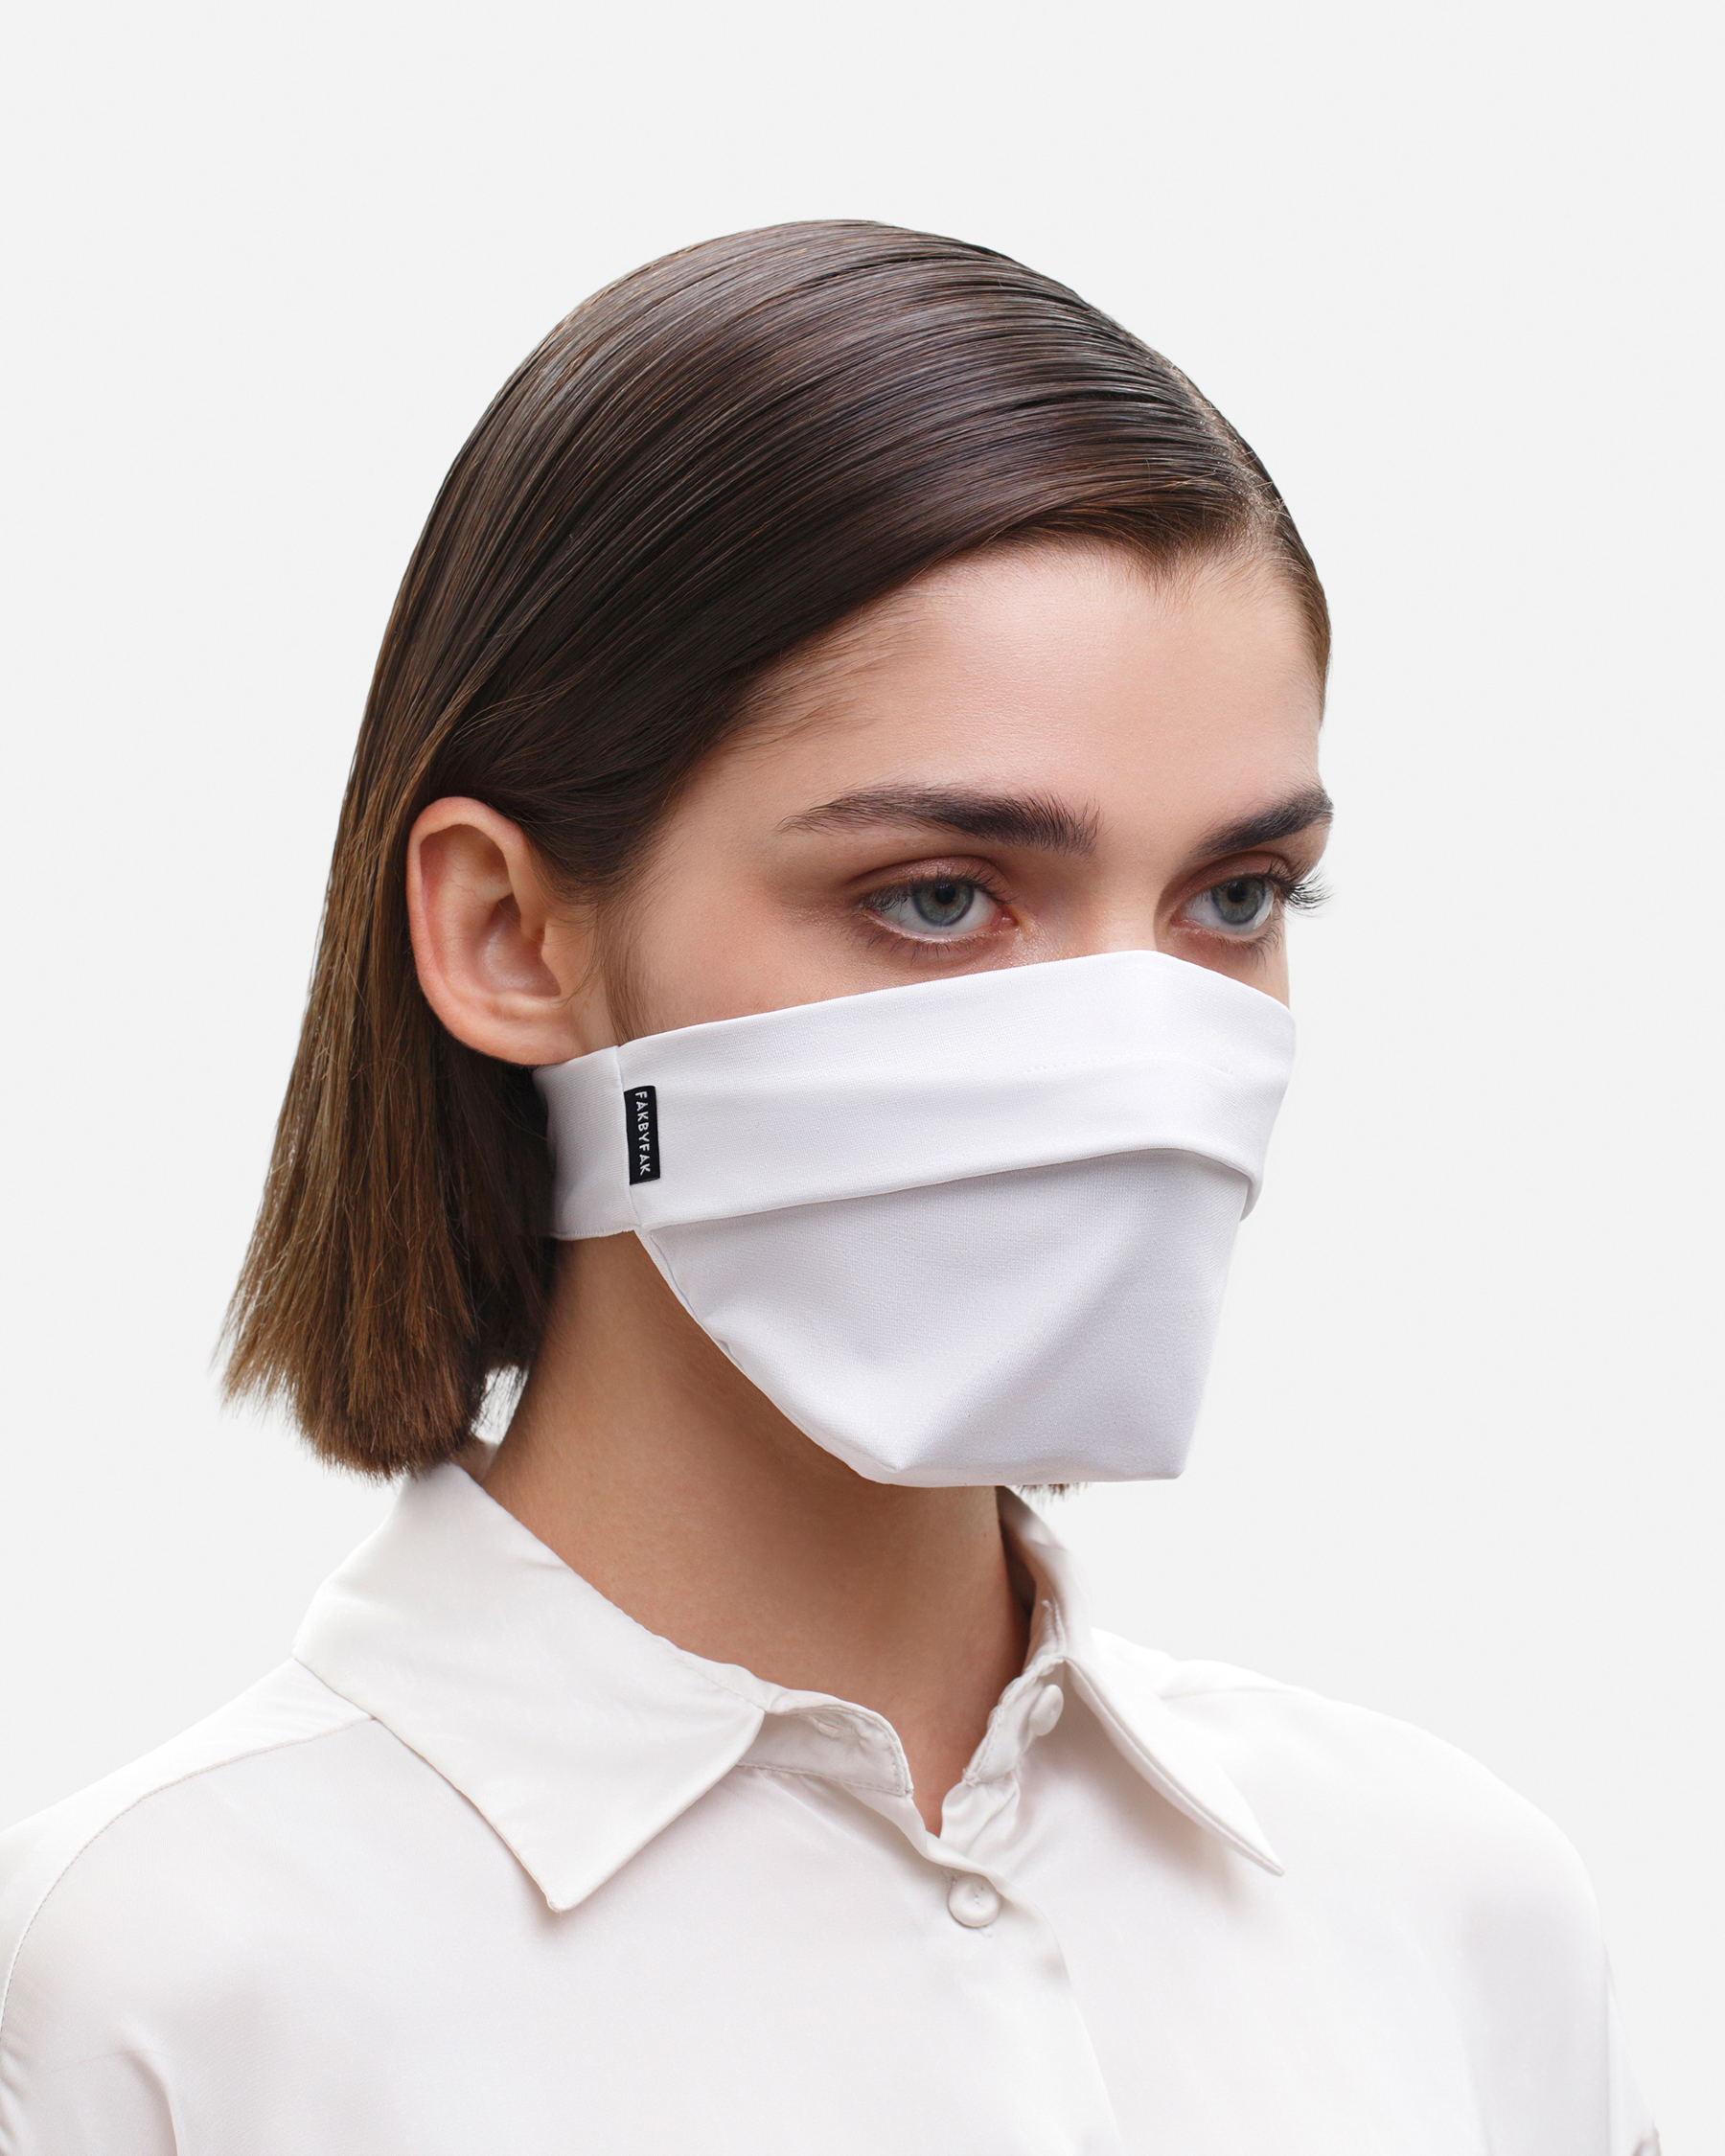 FAKBYFAK  The Vega. Ear Strap-Free High-End Protective Antibacterial (ATB-UV+) Face Mask. White Code: FBF-42101-06